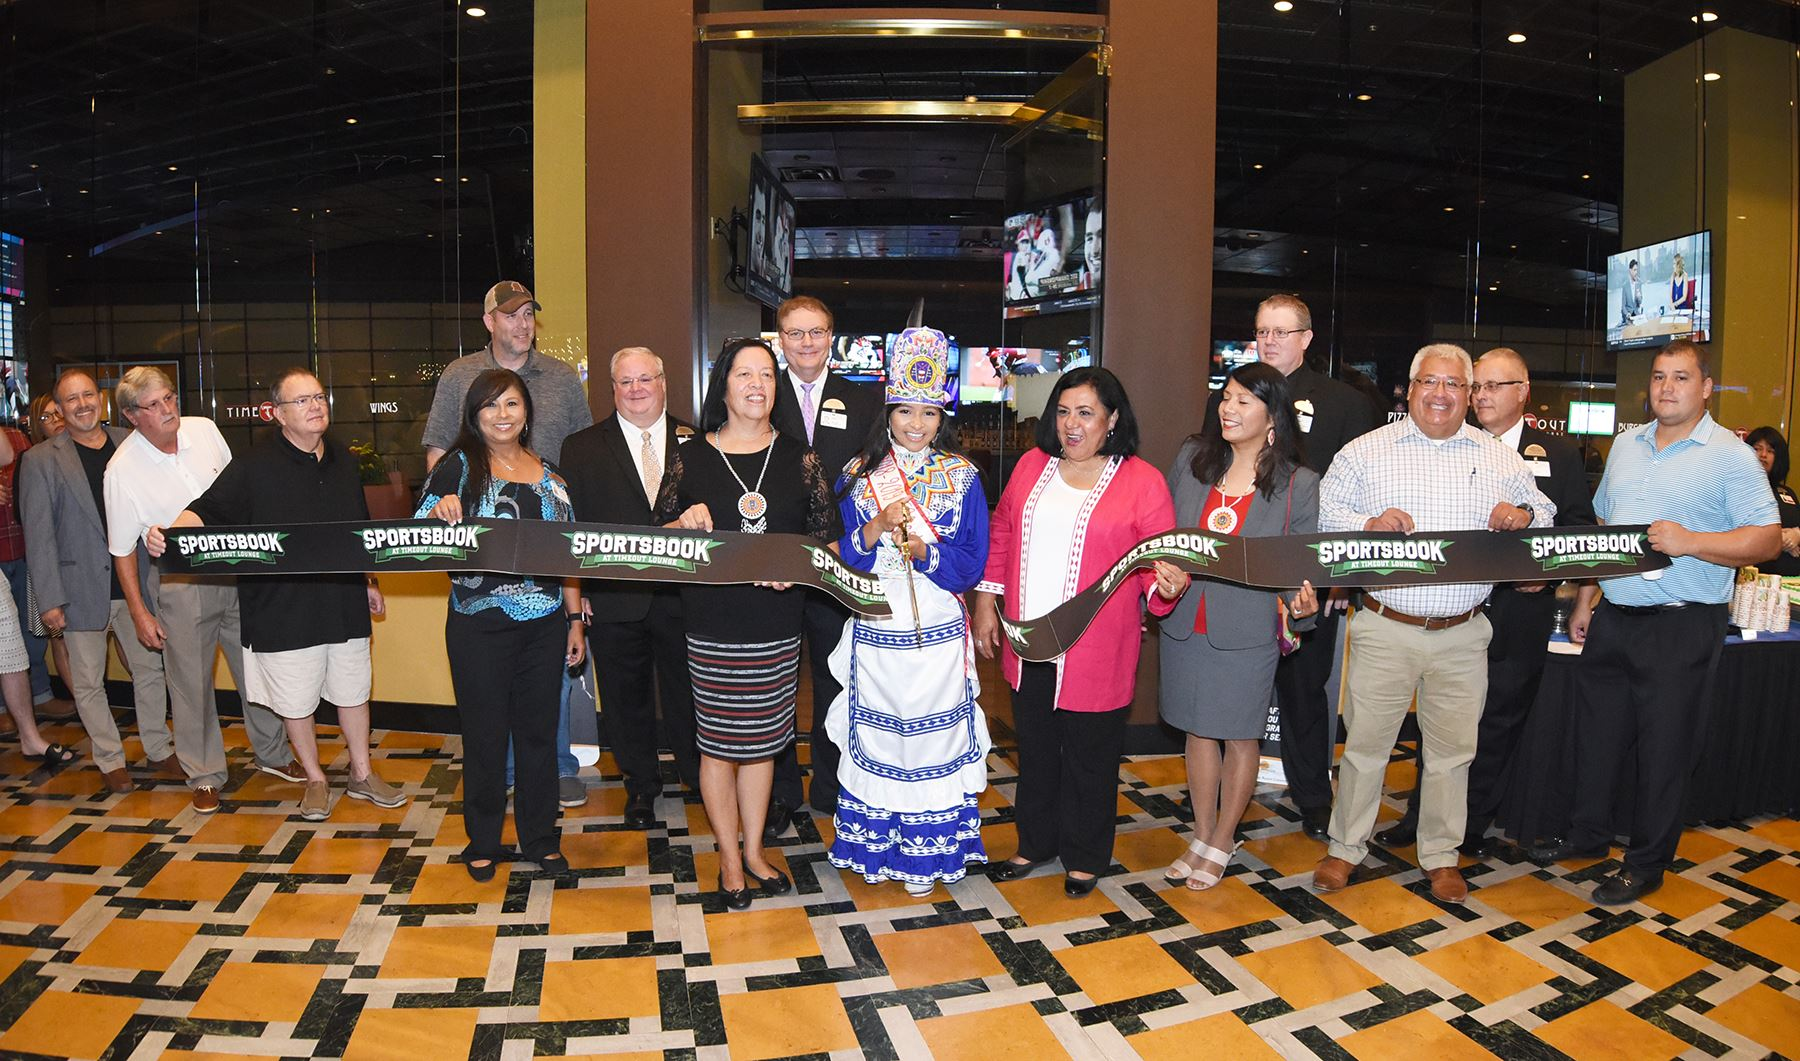 'It's the wave of the future': Sports betting in Indian Country